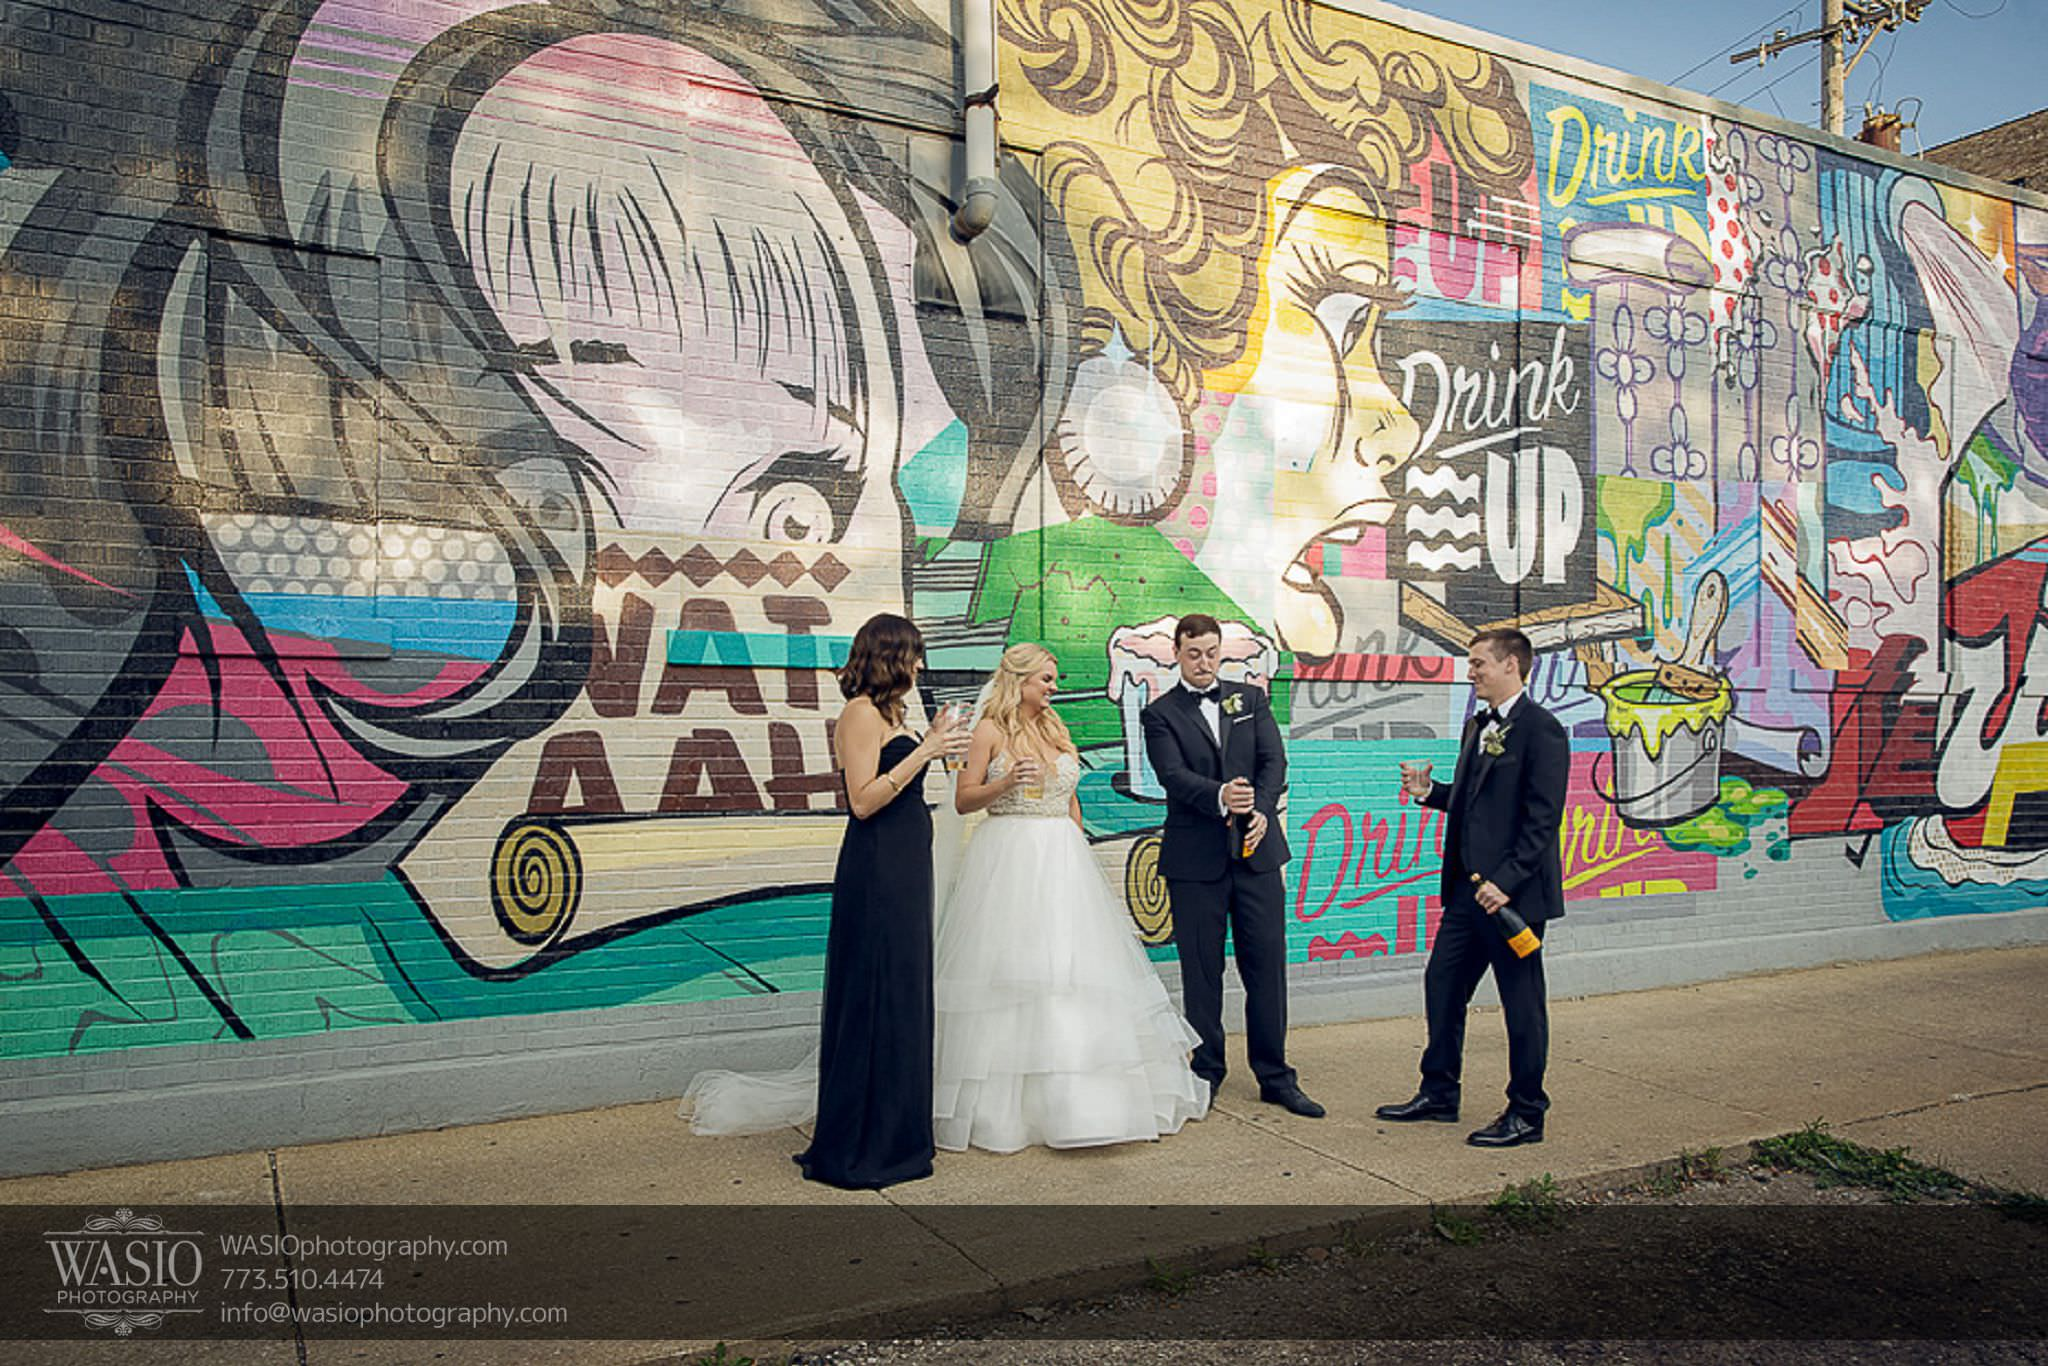 venue-one-chicago-wedding-popping-champagne-cool-graffiti-wall-64 Venue One Chicago Wedding - Katie + Mike